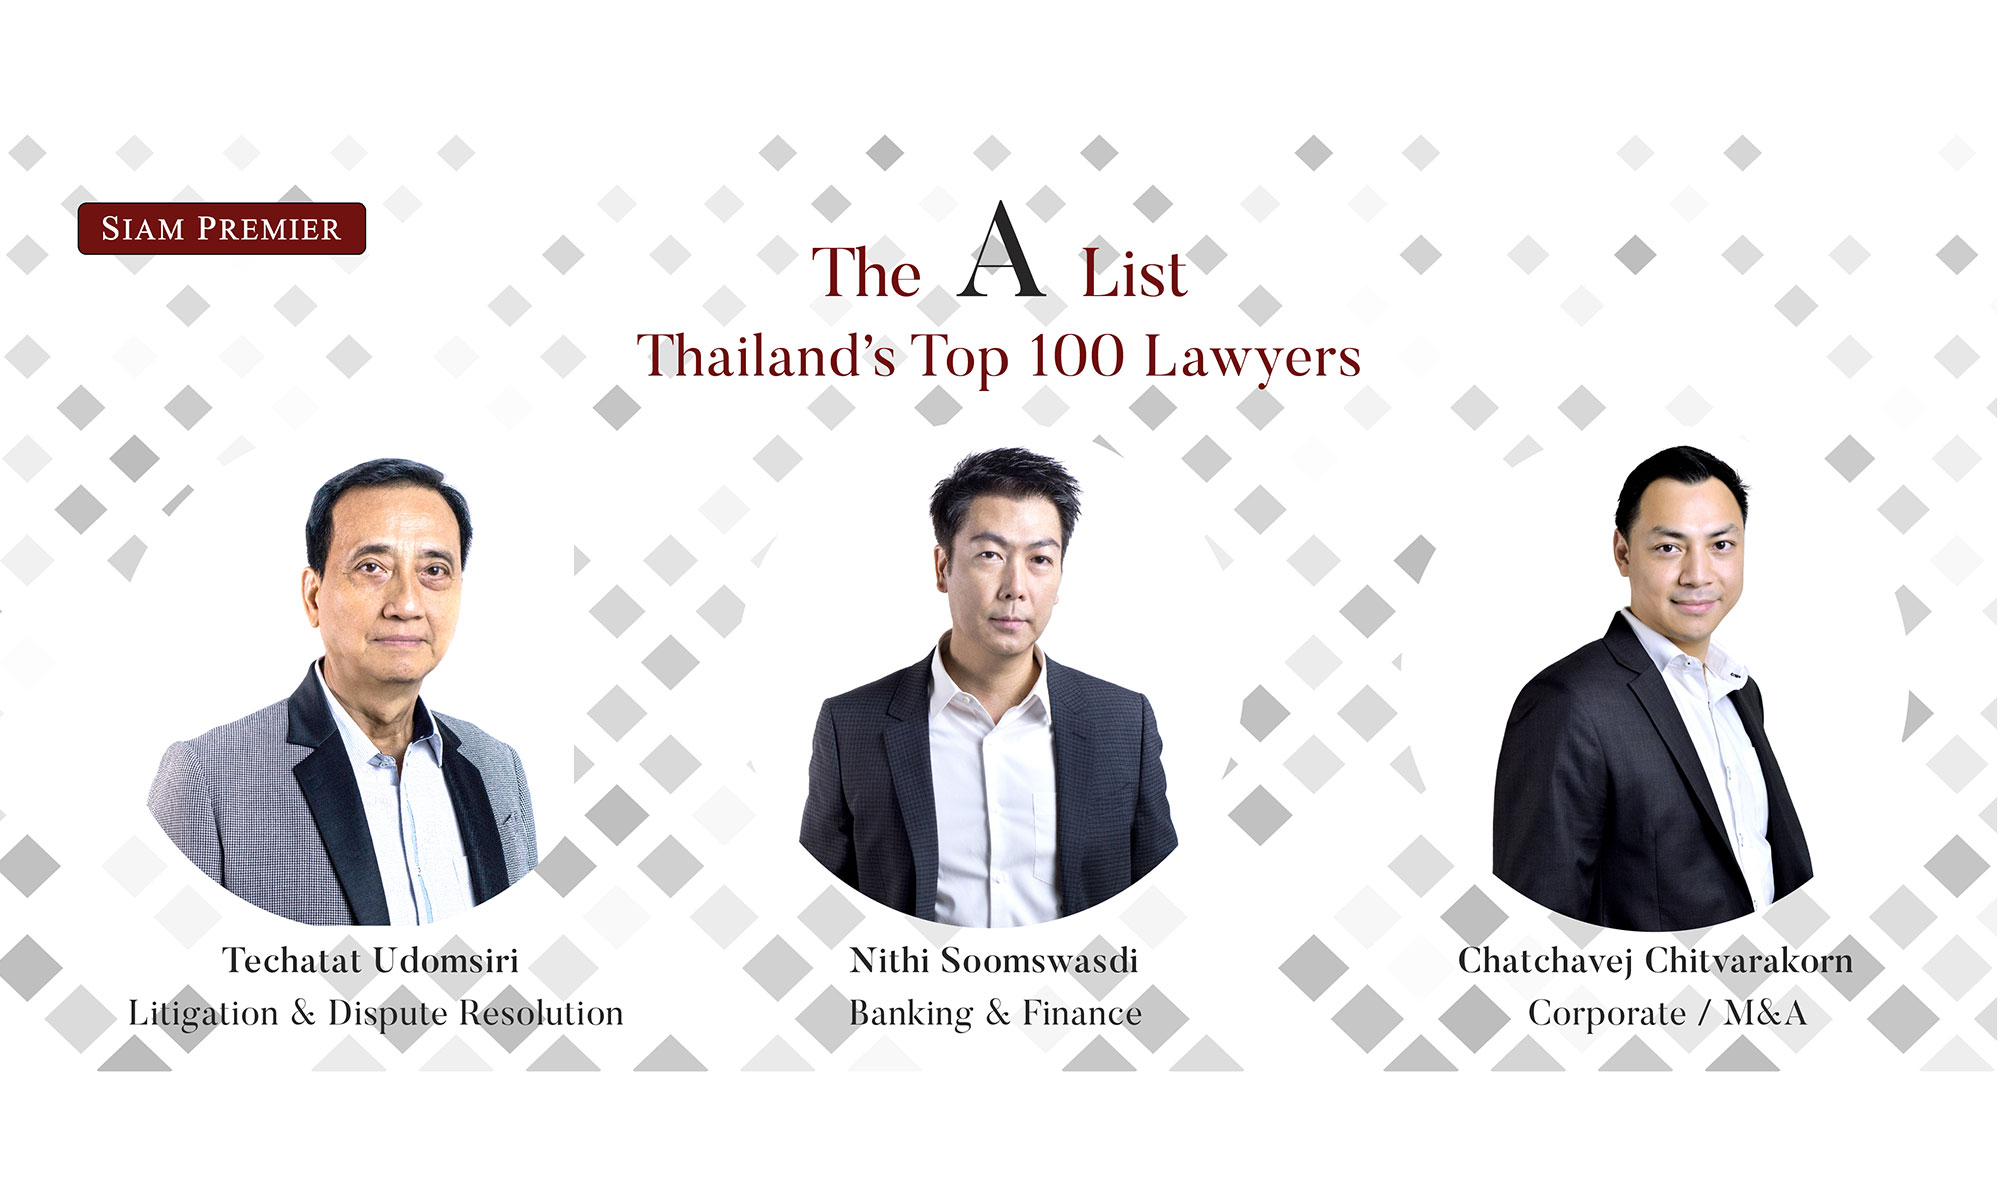 A-List Thailand's Top 100 Lawyers